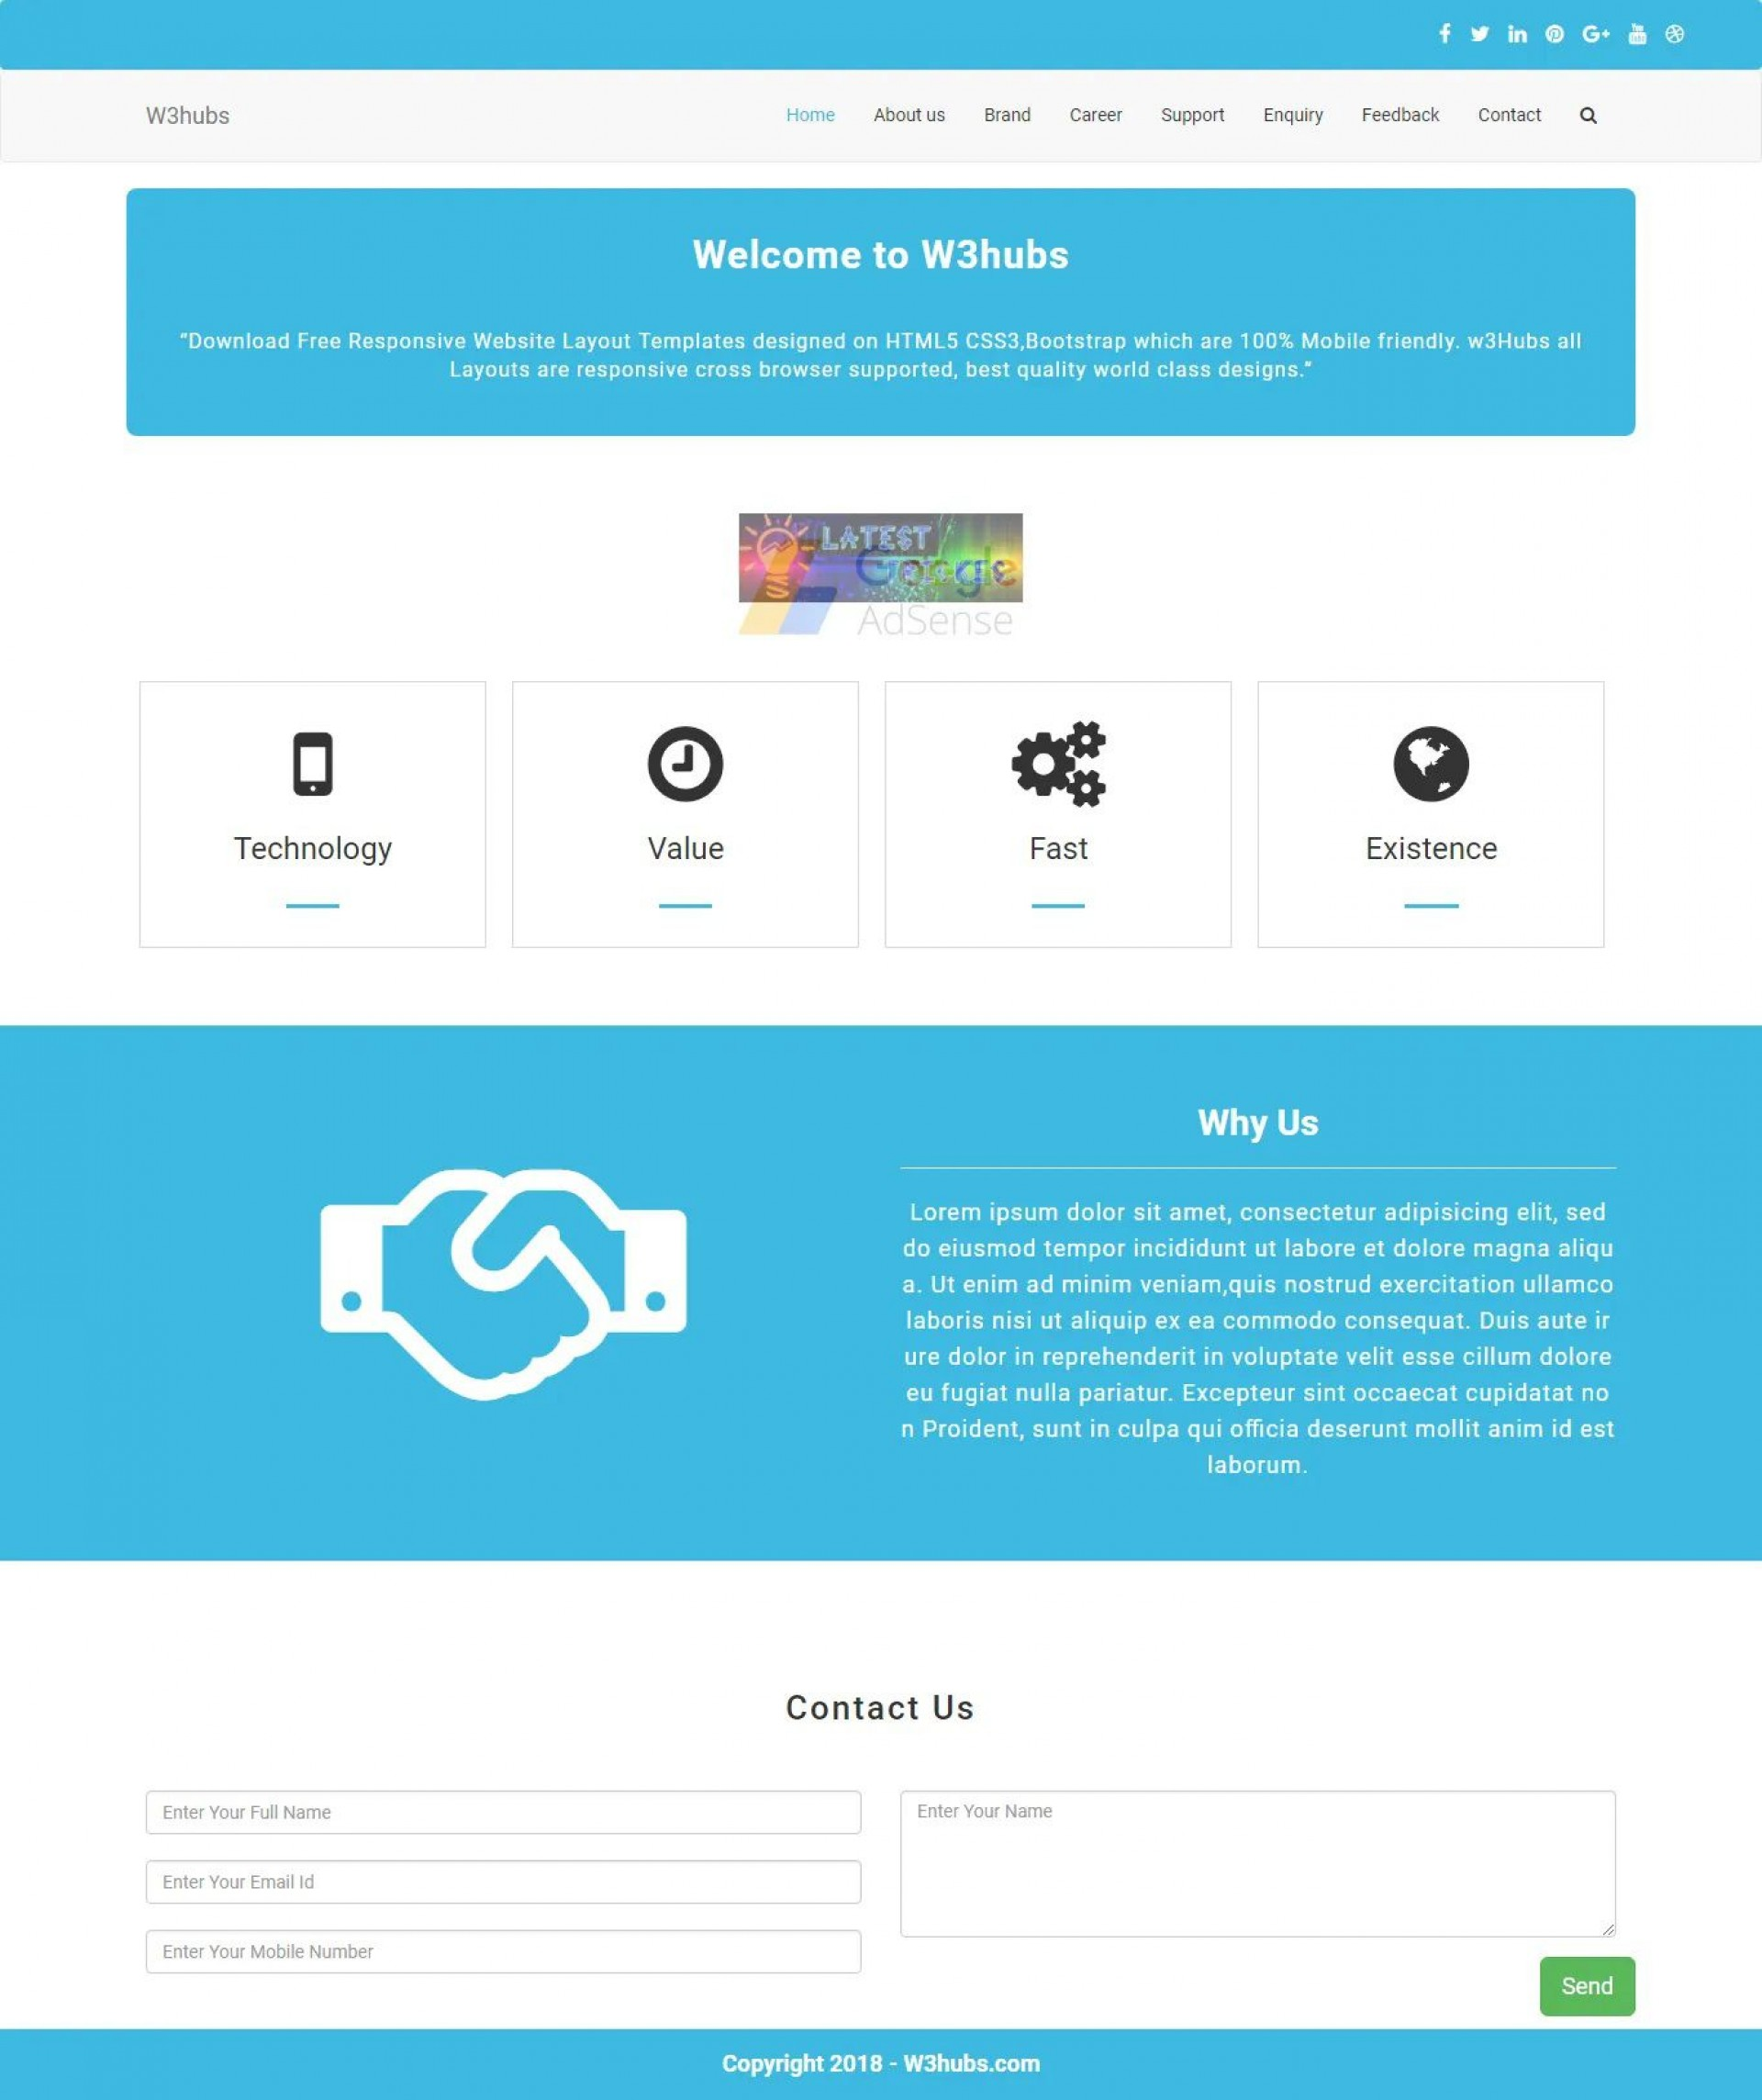 007 Unbelievable Free Php Website Template Photo  Download And Cs Full Theme1920